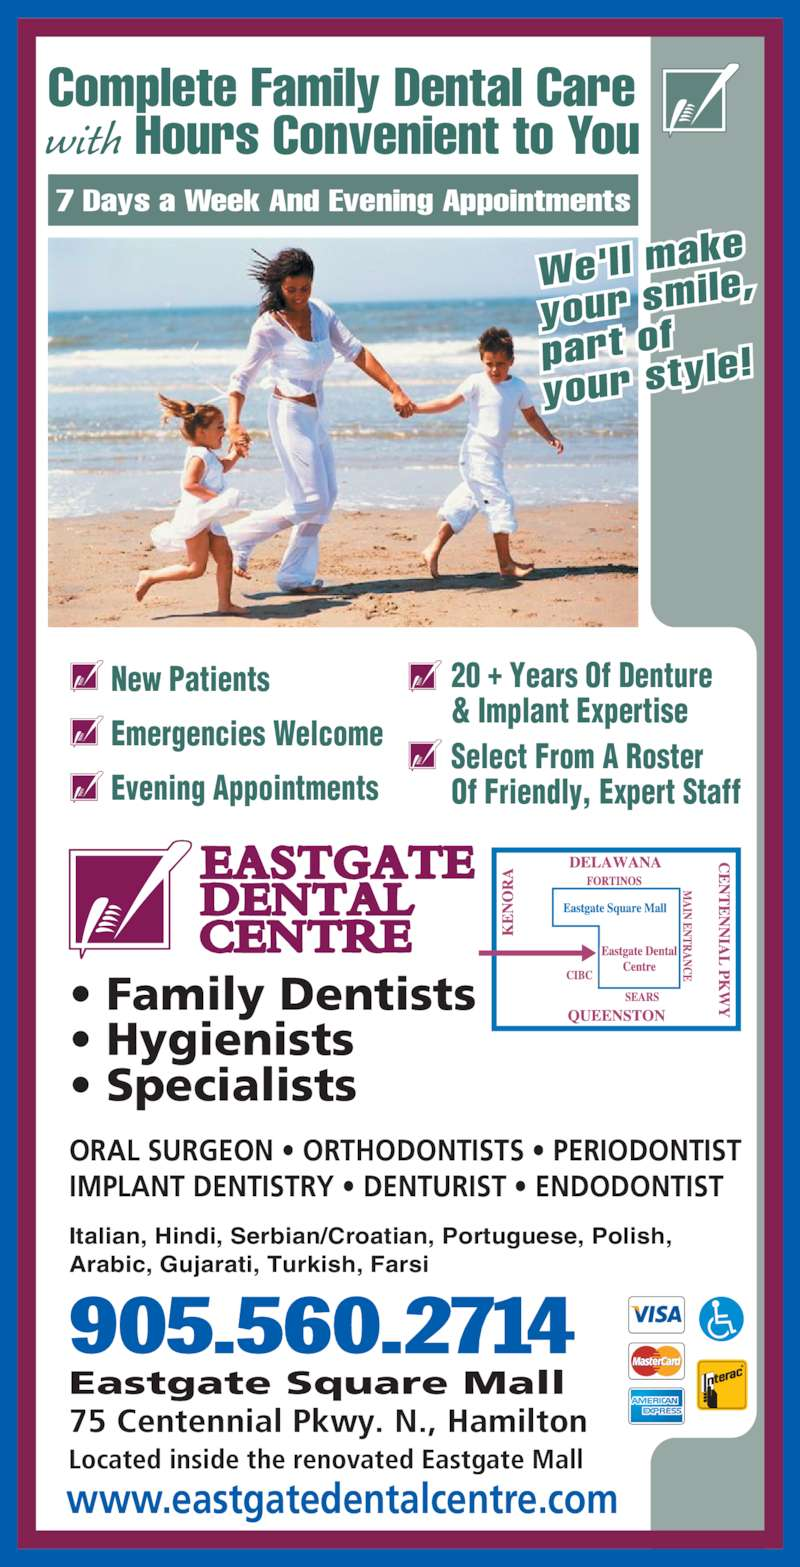 Eastgate Dental Centre (905-560-2714) - Display Ad - Located inside the renovated Eastgate Mall with Hours Convenient to You Complete Family Dental Care 75 Centennial Pkwy. N., Hamilton www.eastgatedentalcentre.com Eastgate Square Mall • Family Dentists ORAL SURGEON • ORTHODONTISTS • PERIODONTIST IMPLANT DENTISTRY • DENTURIST • ENDODONTIST 7 Days a Week And Evening Appointments 905.560.2714 20 + Years Of Denture & Implant Expertise Select From A Roster Of Friendly, Expert Staff New Patients Emergencies Welcome Evening Appointments Italian, Hindi, Serbian/Croatian, Portuguese, Polish, Arabic, Gujarati, Turkish, Farsi We'll mak your smi part of your styl • Hygienists • Specialists le, e!